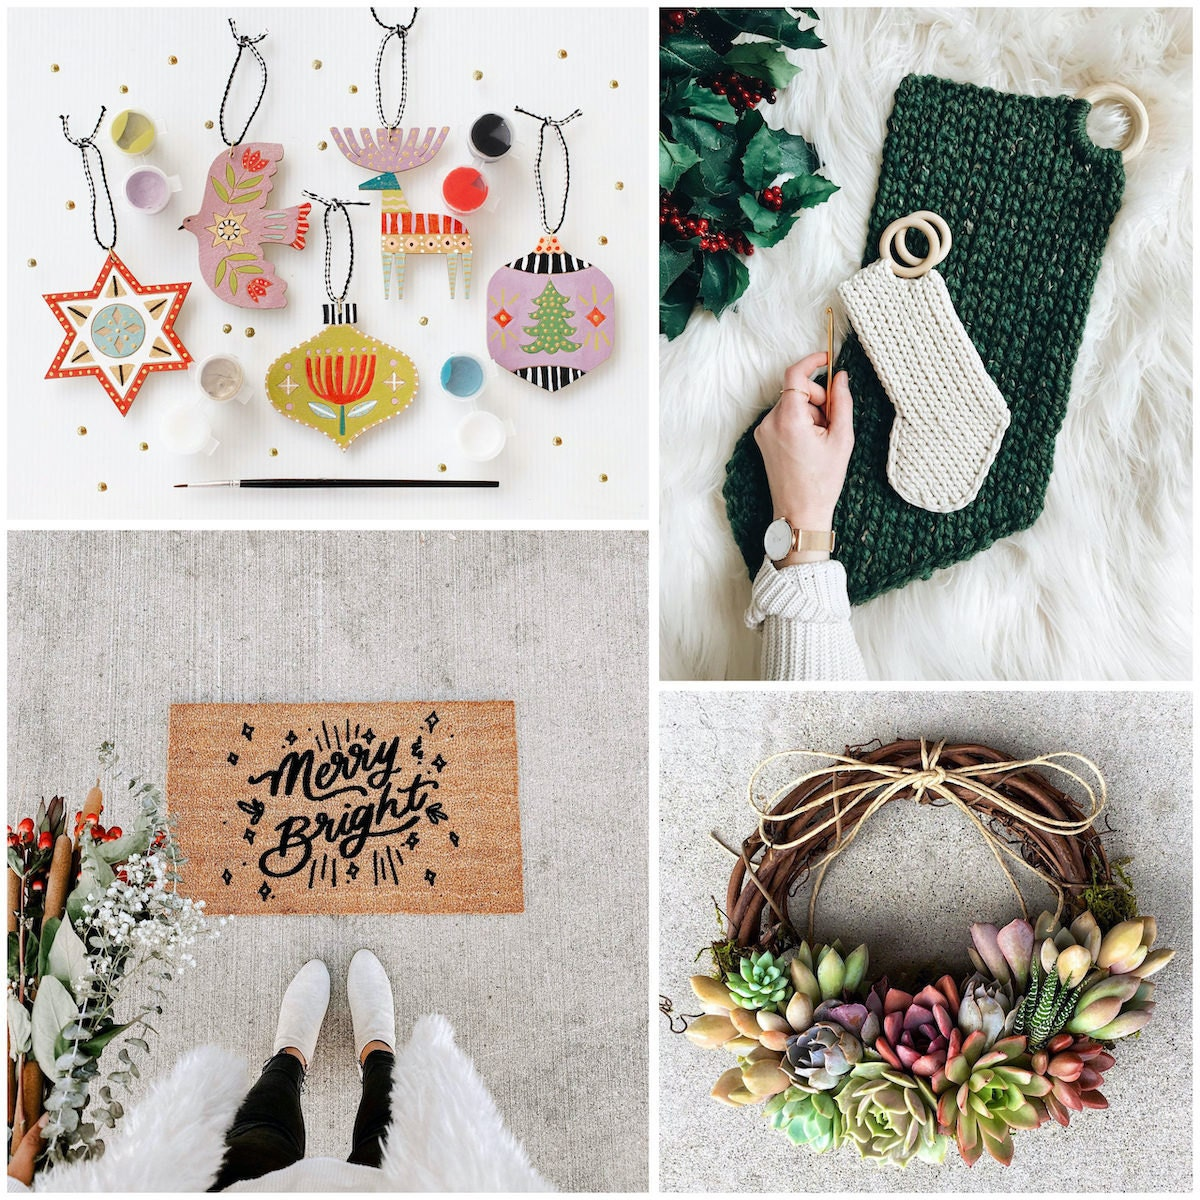 DIY ornaments, crochet stockings, a succulent wreath, and a message doormat from Etsy